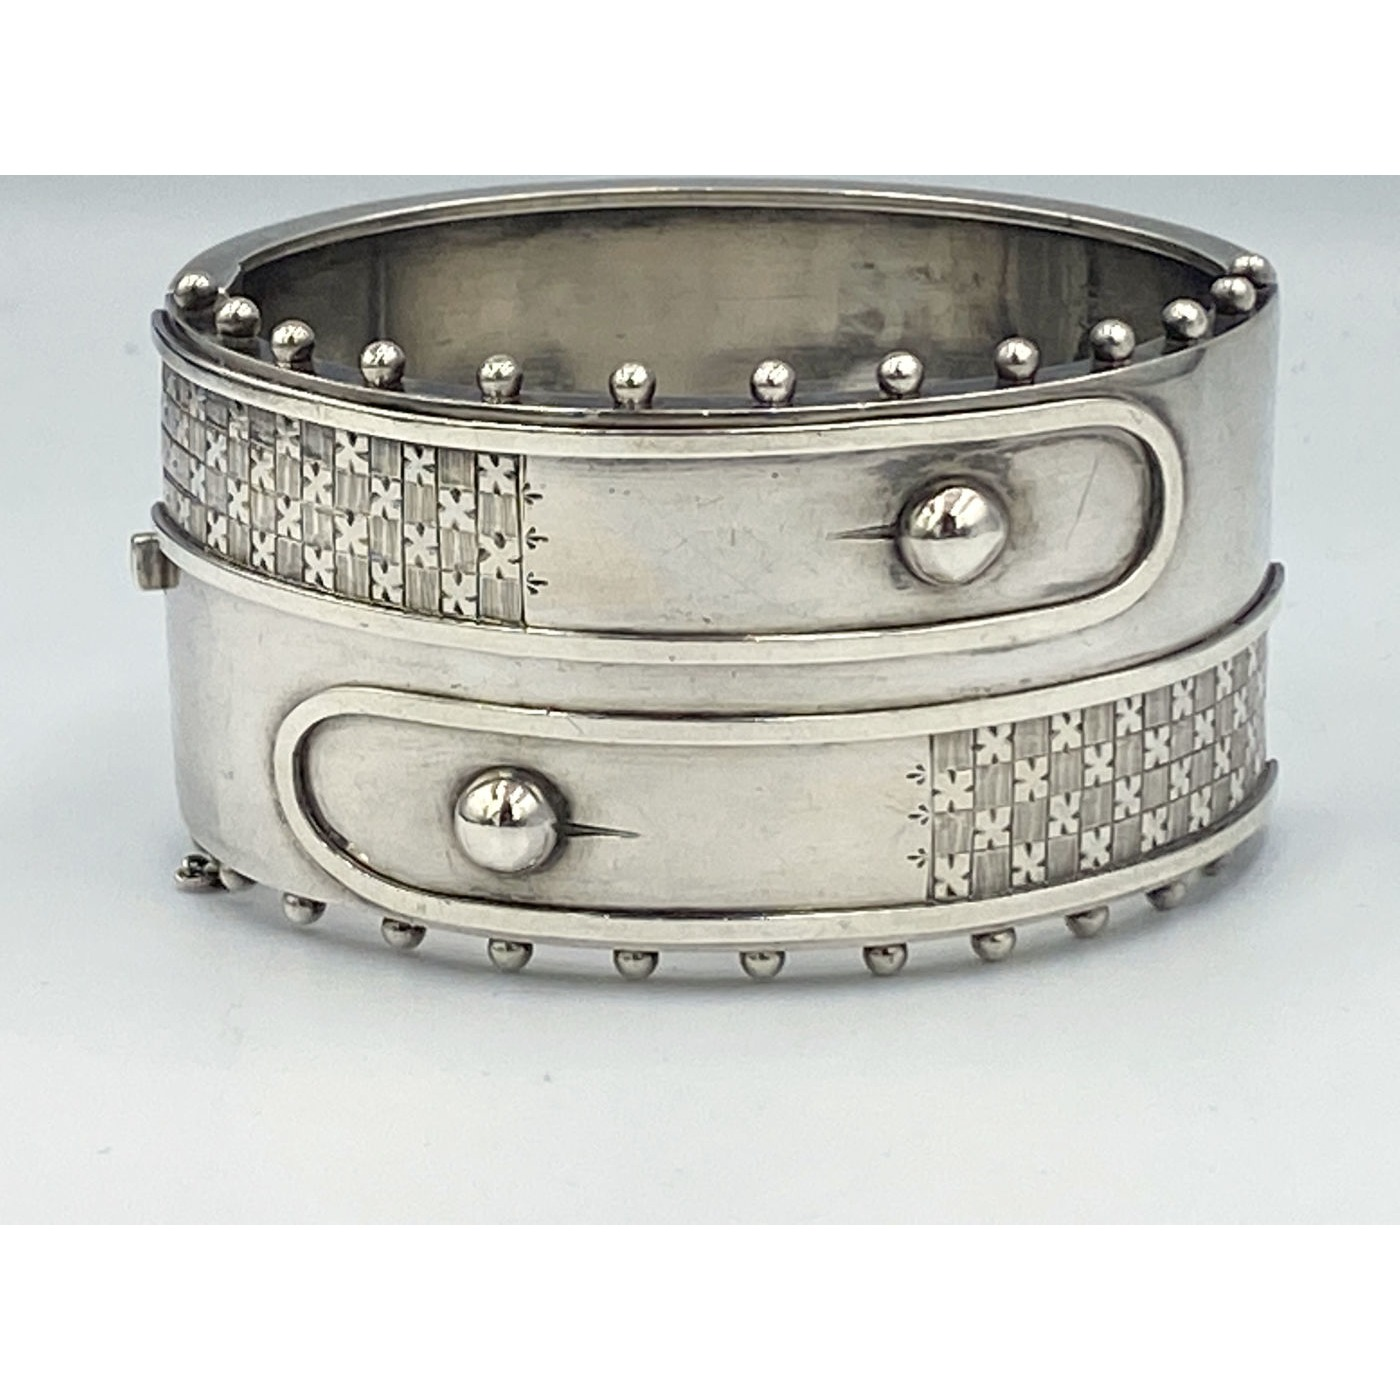 Double Shirt Cuff Beaded Edge Sterling Silver English Bangle